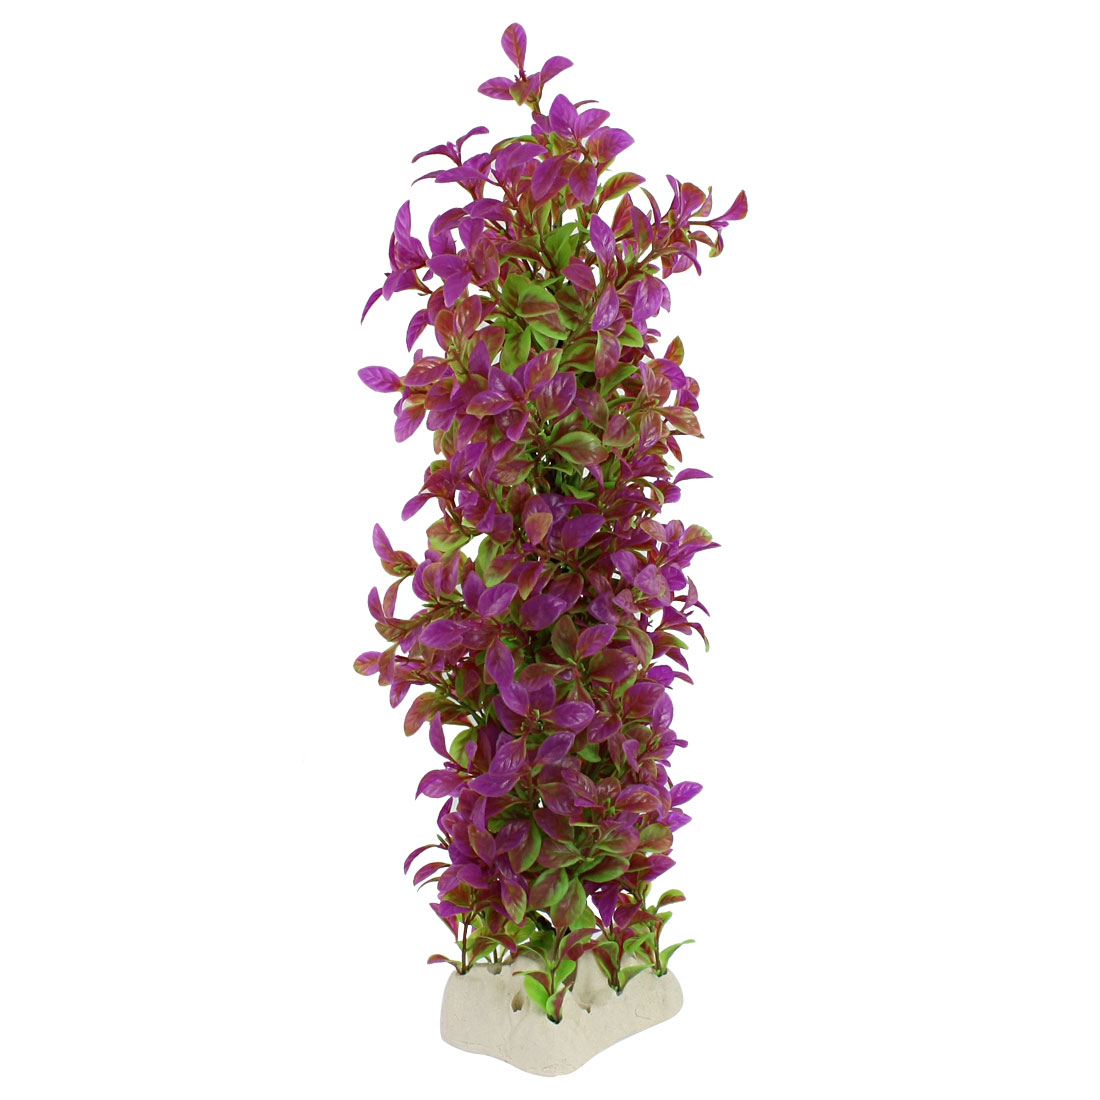 "Fuchsia Green Plastic Aquascaping Plant Decor 16.5"" High for Aquarium"